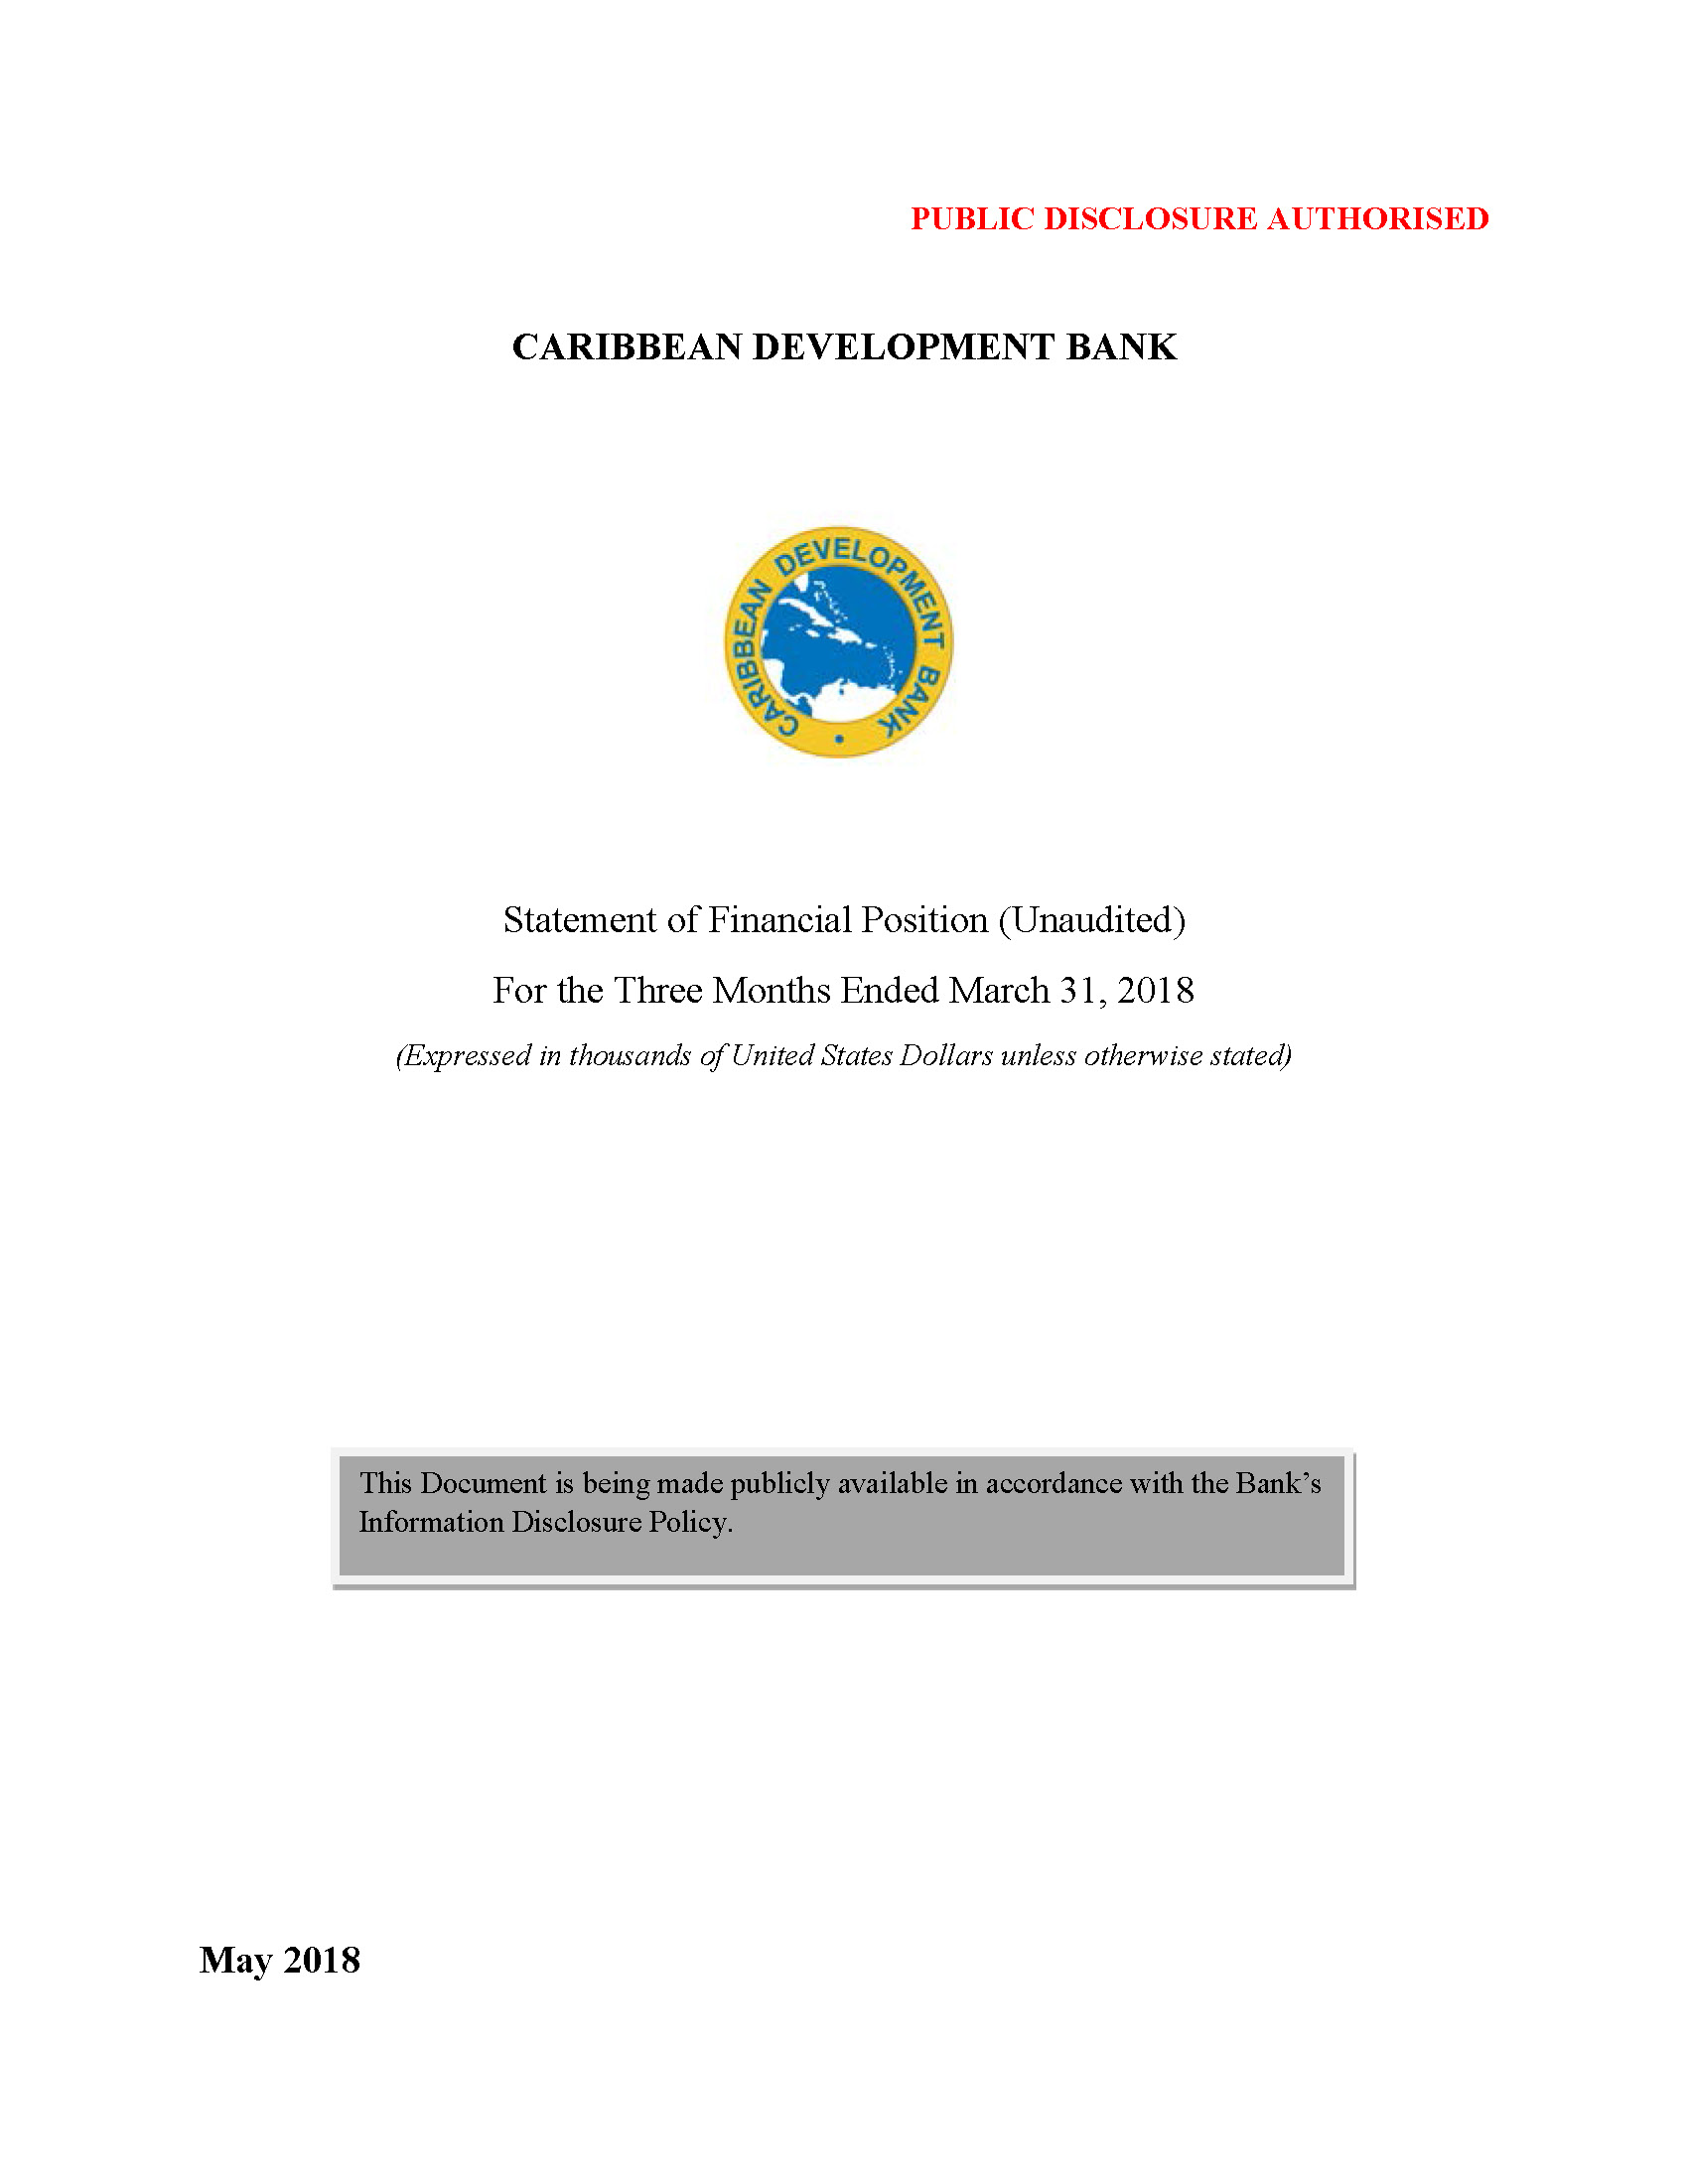 Text based cover featuring document title and CDB logo